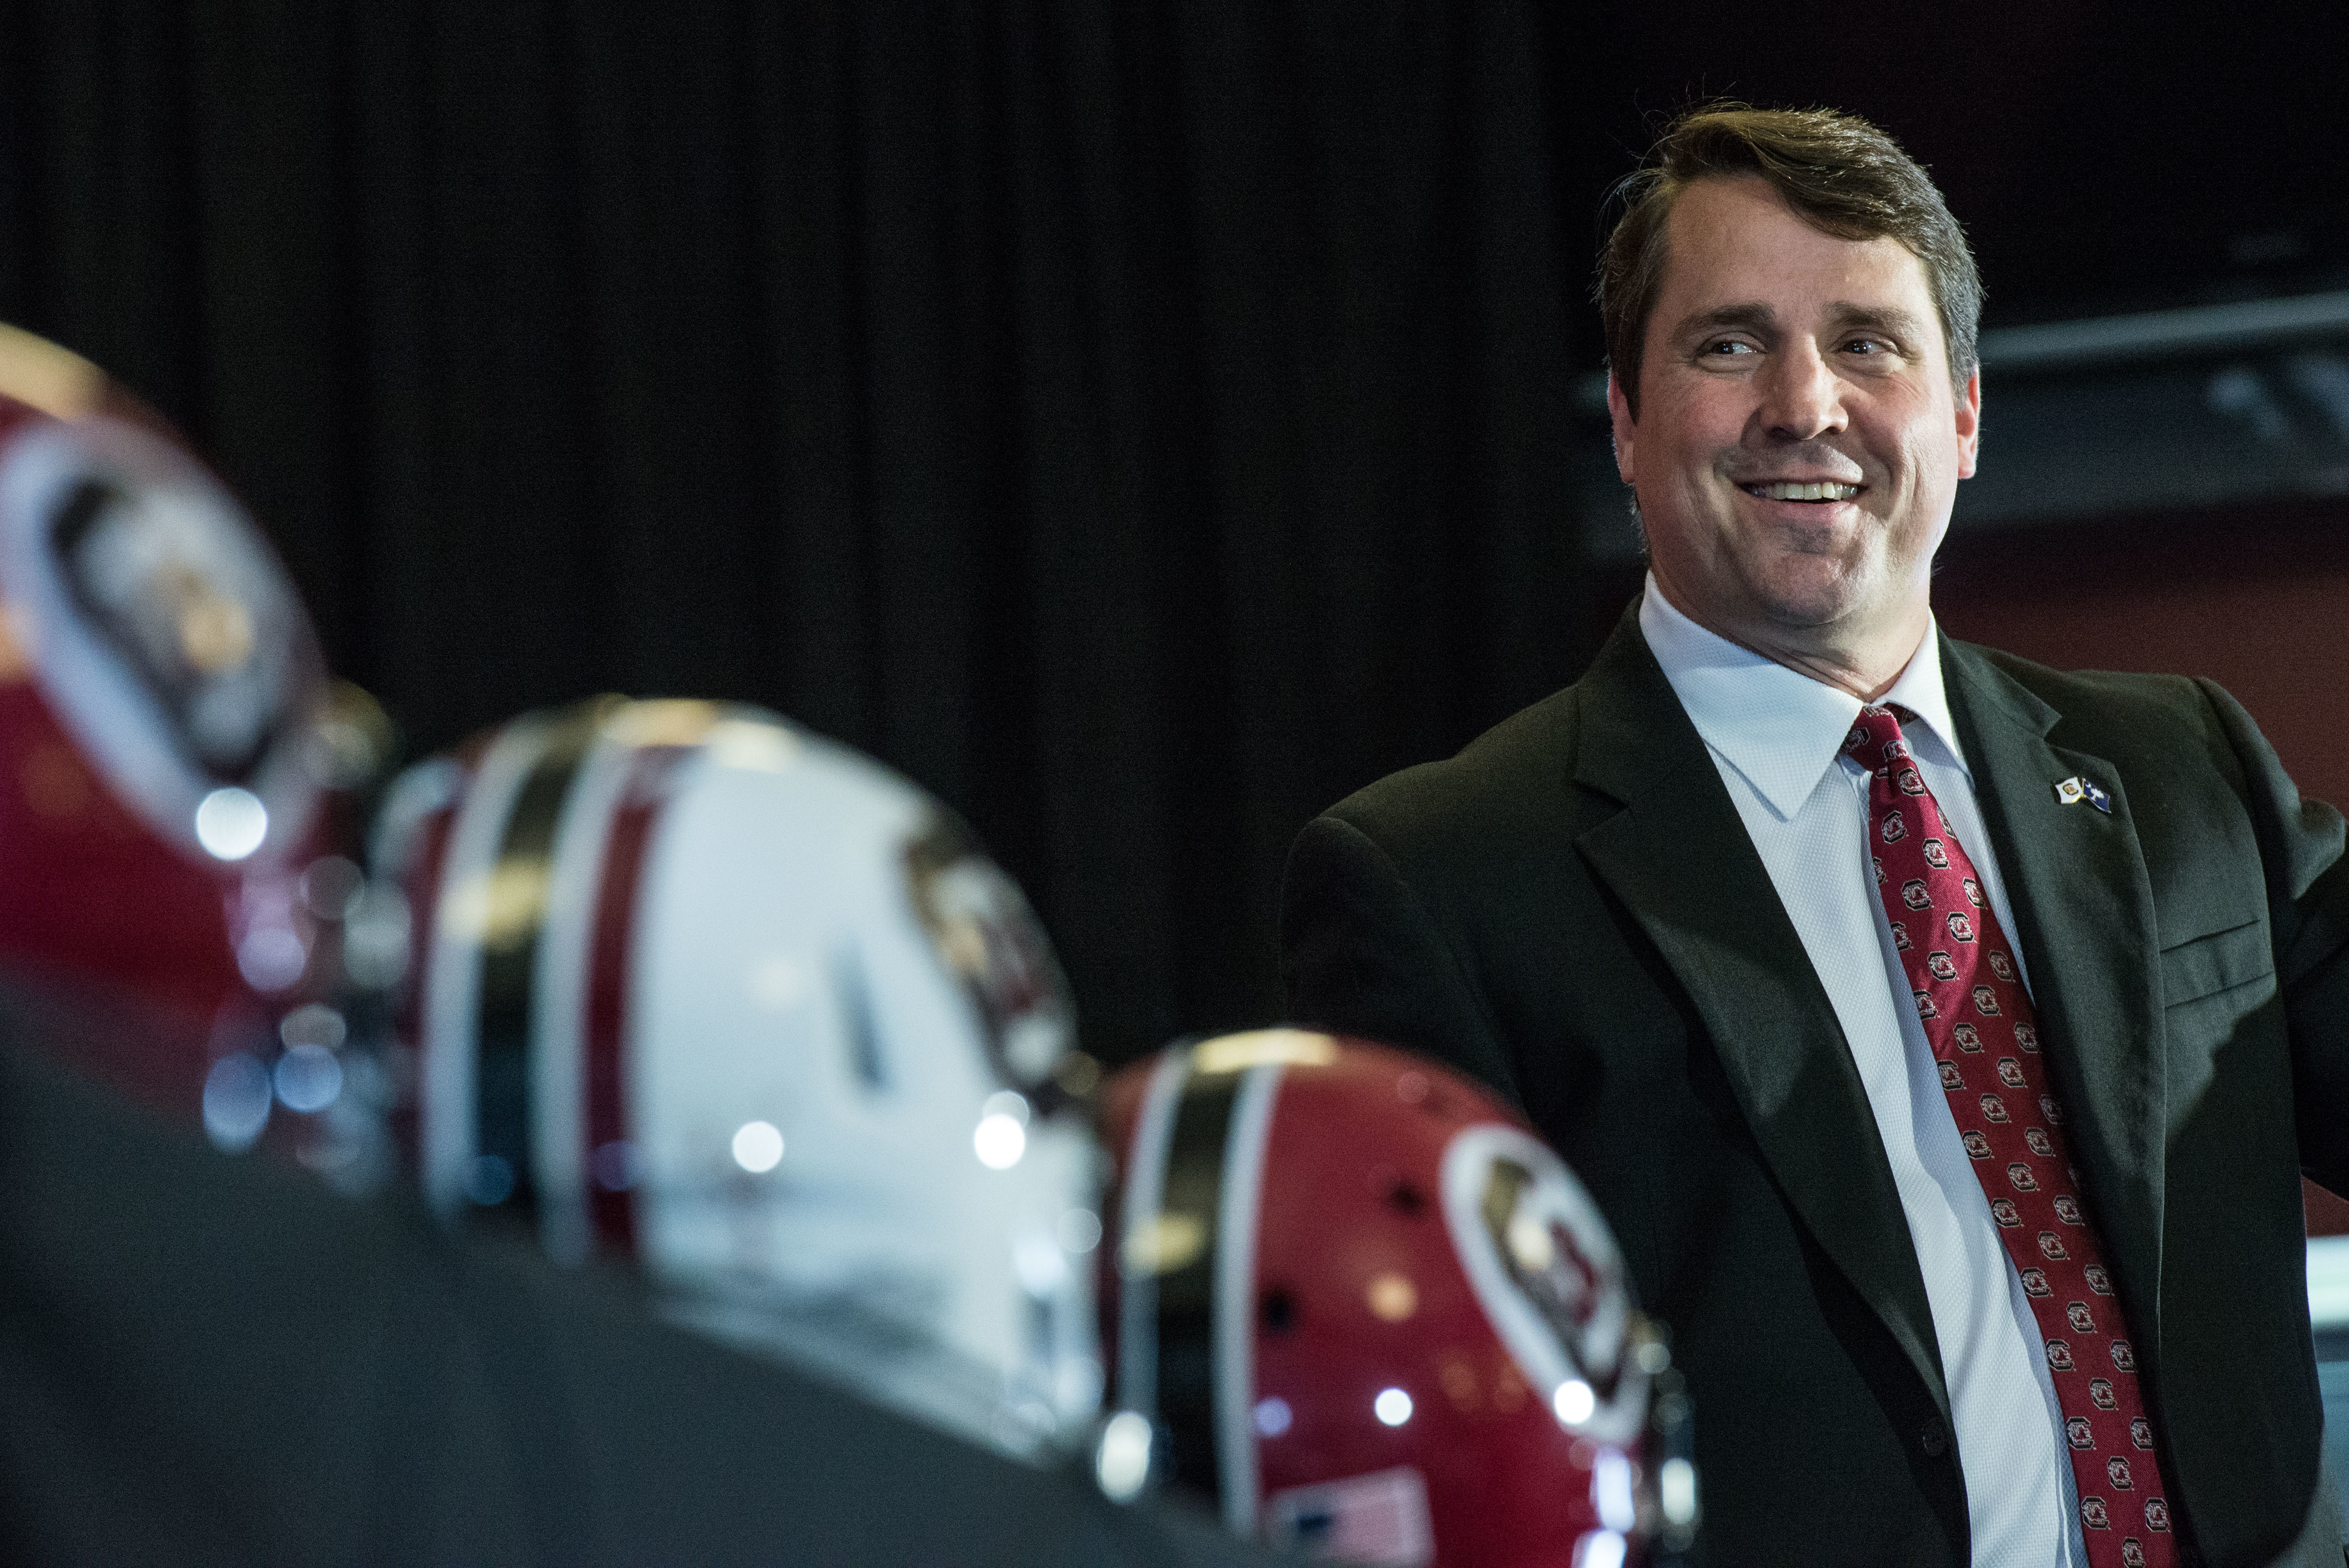 FILE - In this Dec. 7, 2015, file photo, new South Carolina coach Will Muschamp talks to the media during an NCAA college head football news conference at Williams Brice Stadium in Columbia, S.C. Muschamp is only a few days away from his second chance lea